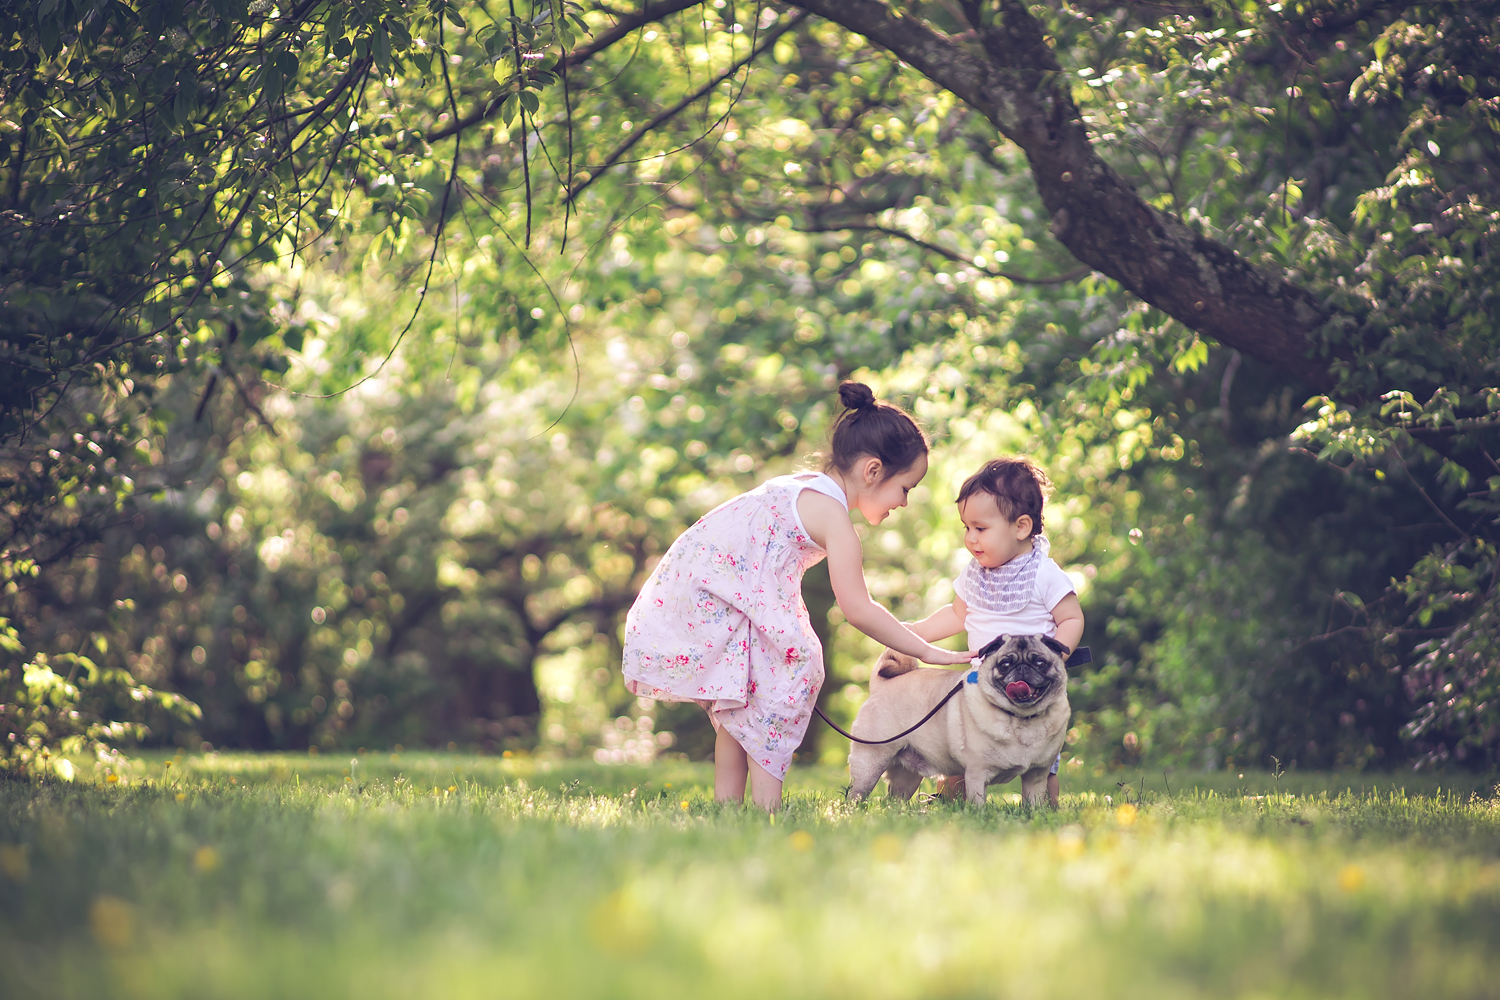 baby with pet pug dog | Tonya Teran Photography - Rockville, MD Newborn Baby and Family Photography